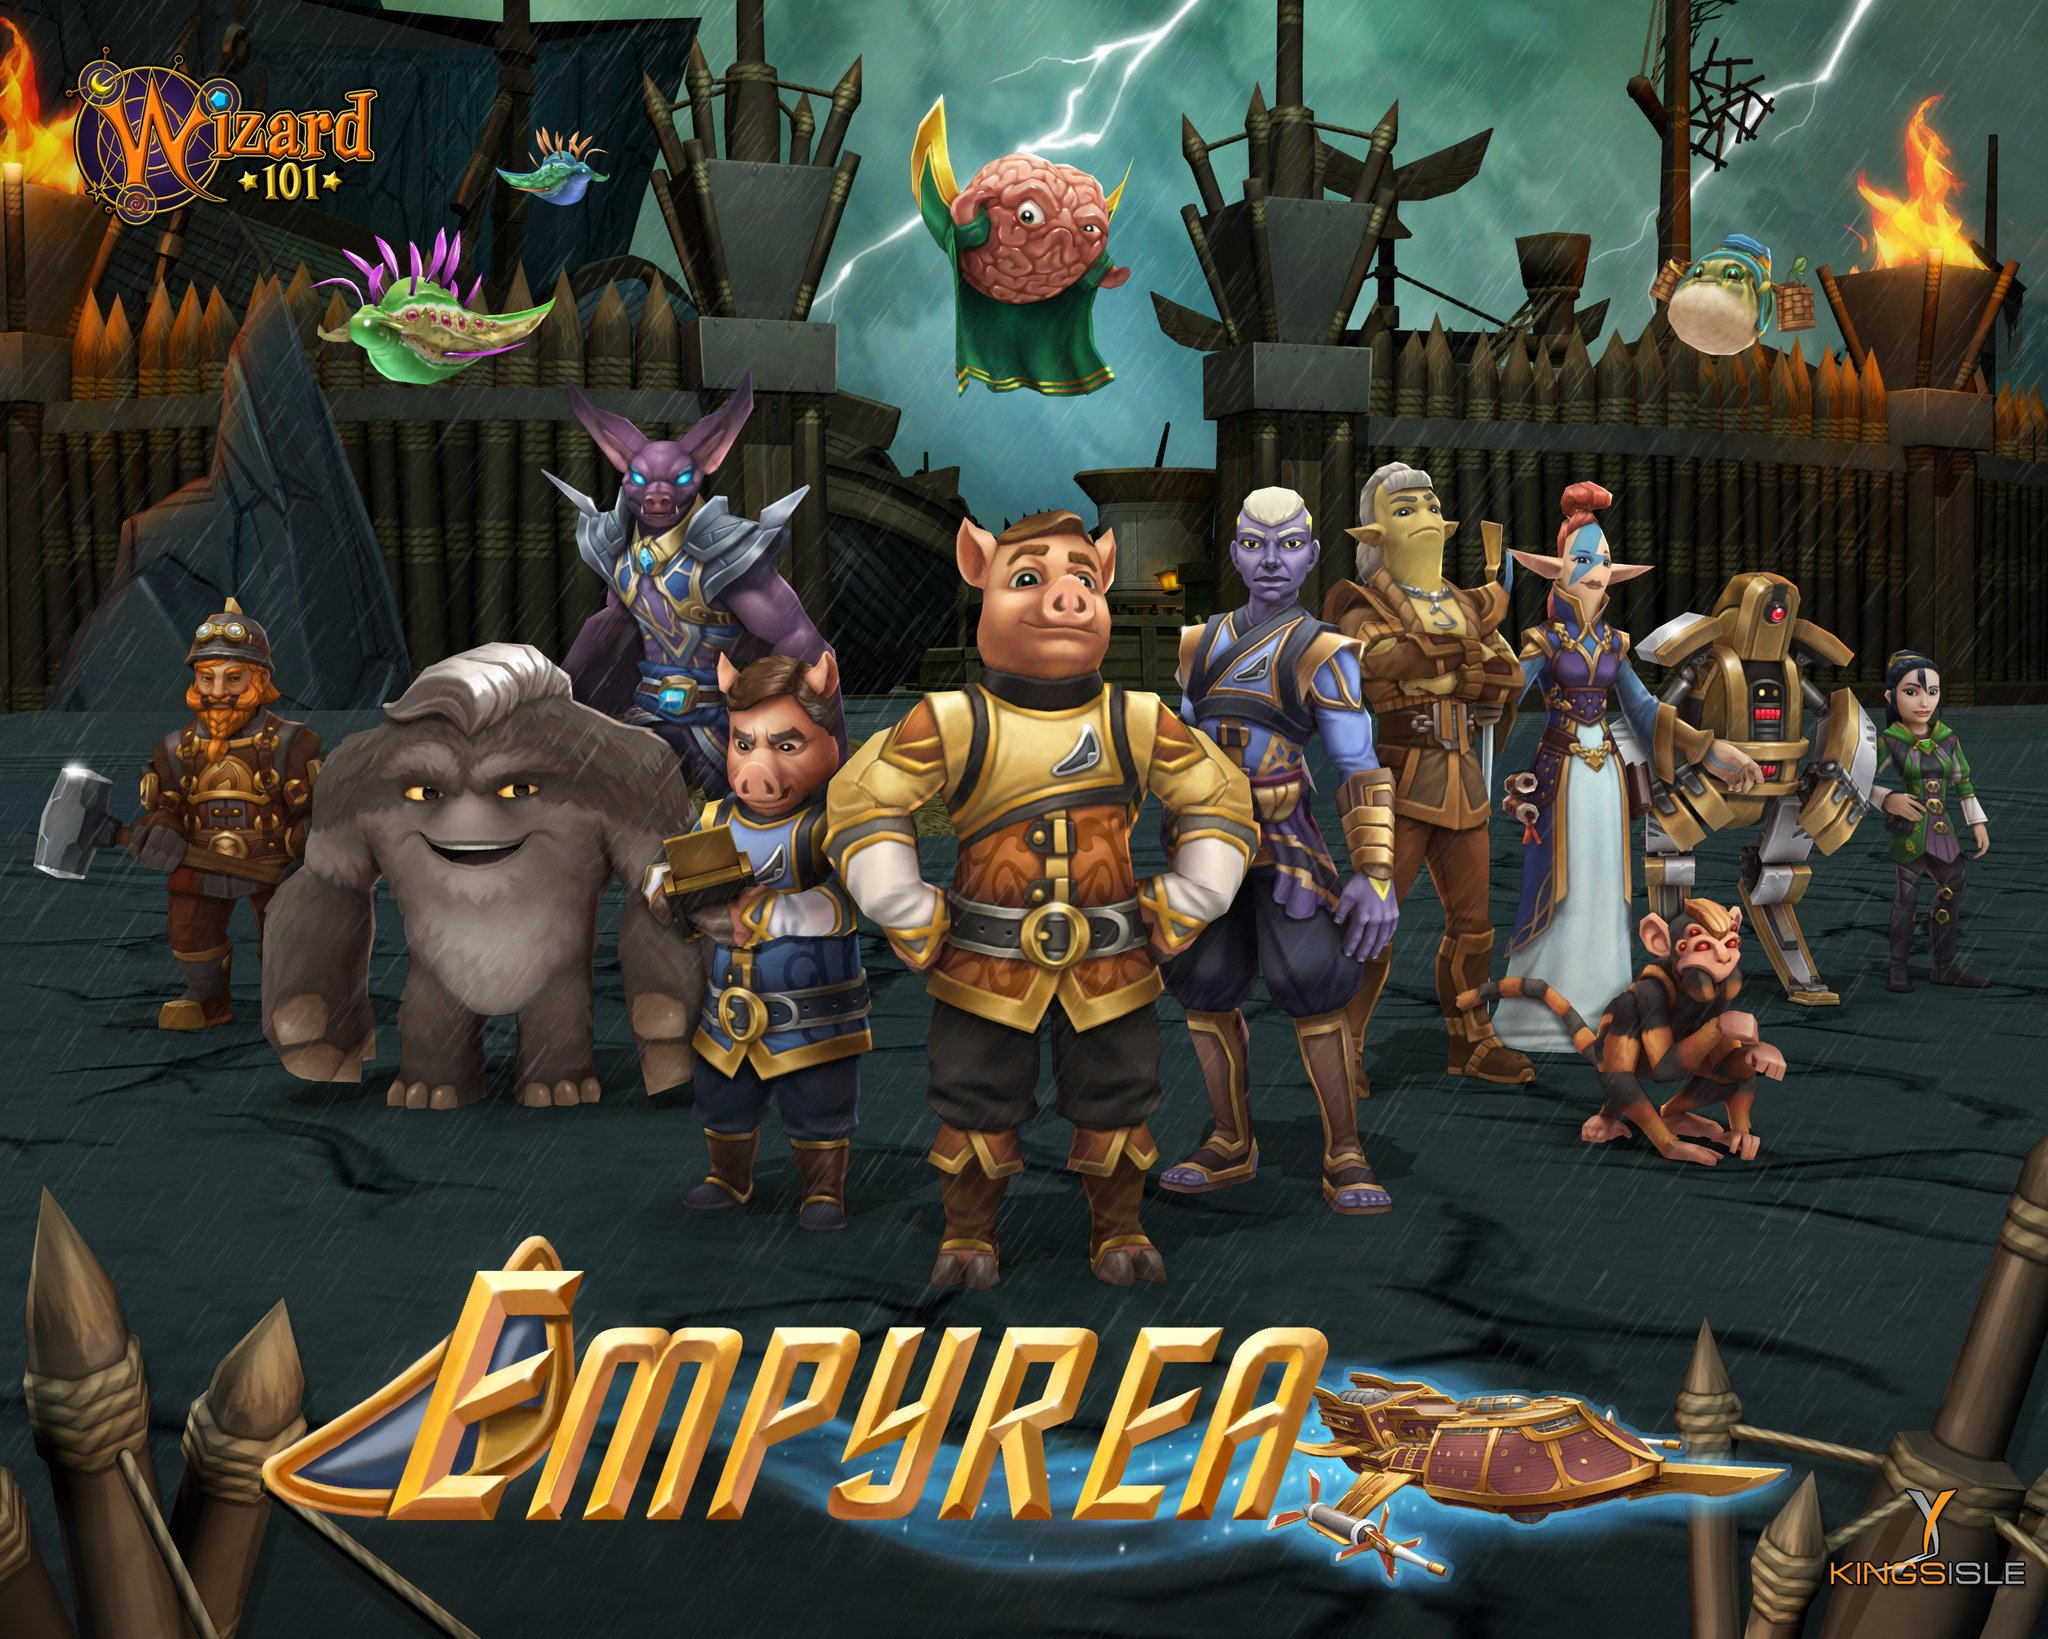 Wizard101 on twitter the wizard101 game and website will - Wizard101 pics ...